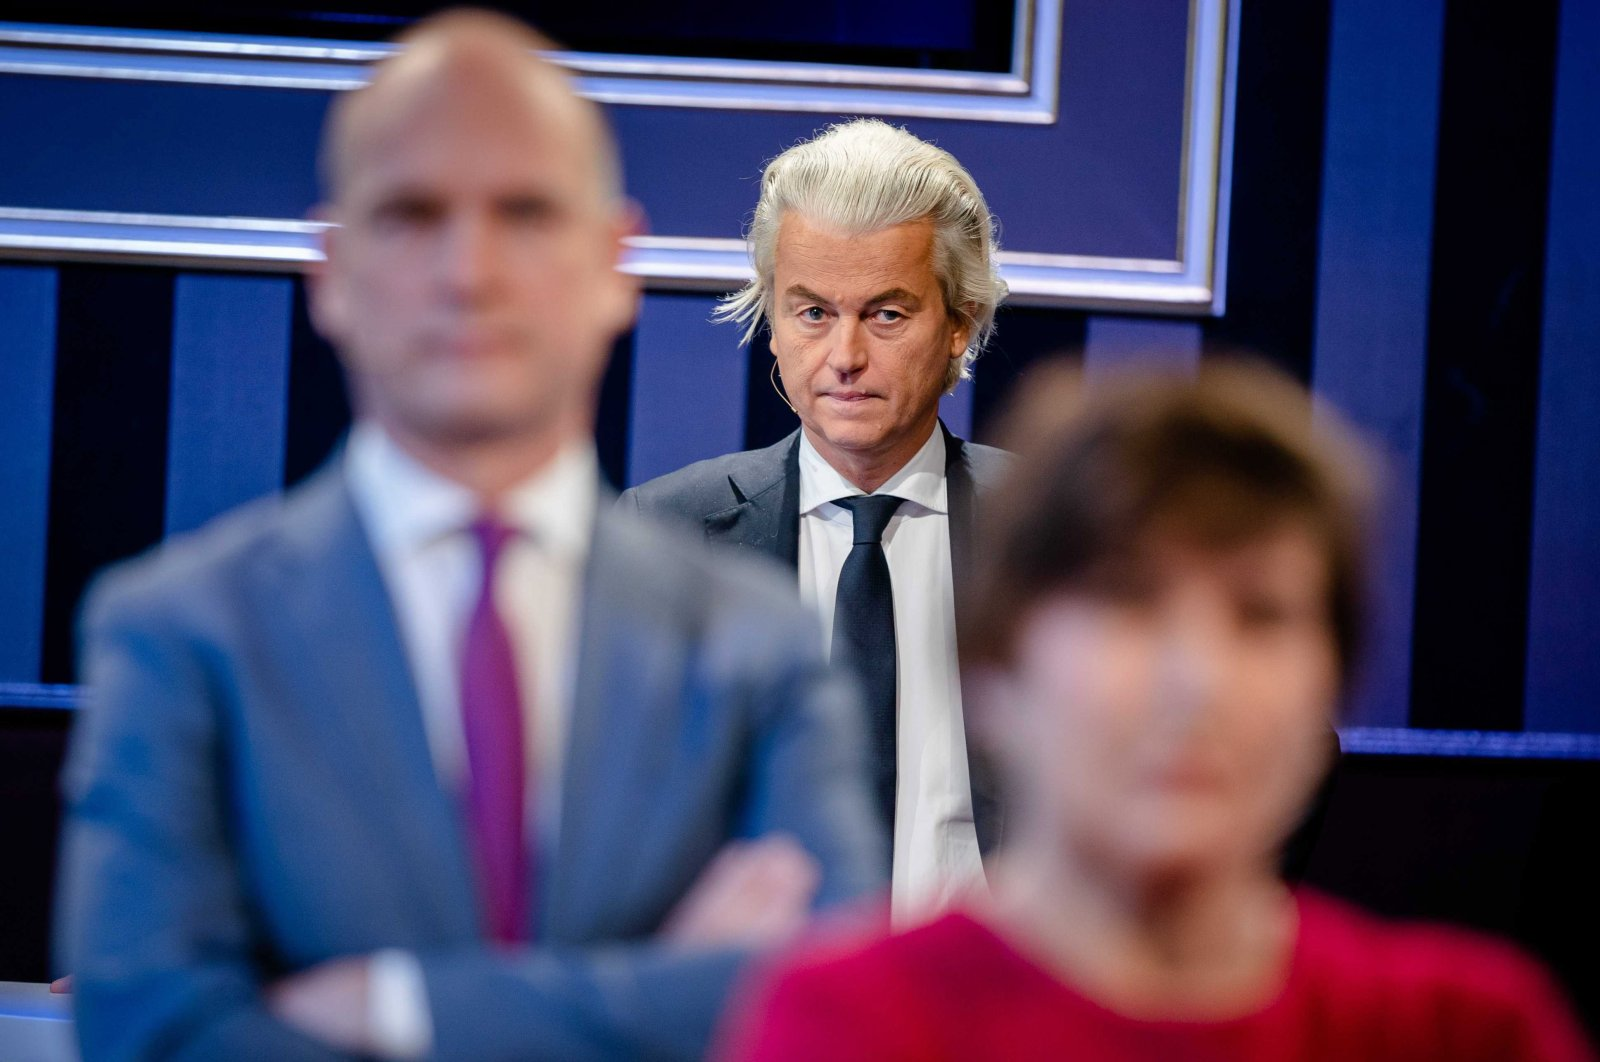 Lilianne Ploumen (Pvda), Gert-Jan Segers (ChristenUnie) and Geert Wilders (PVV) during the first party leader debate for the House of Representatives elections, the Hague, the Netherlands, Feb. 8, 2021. (EPA Photo)